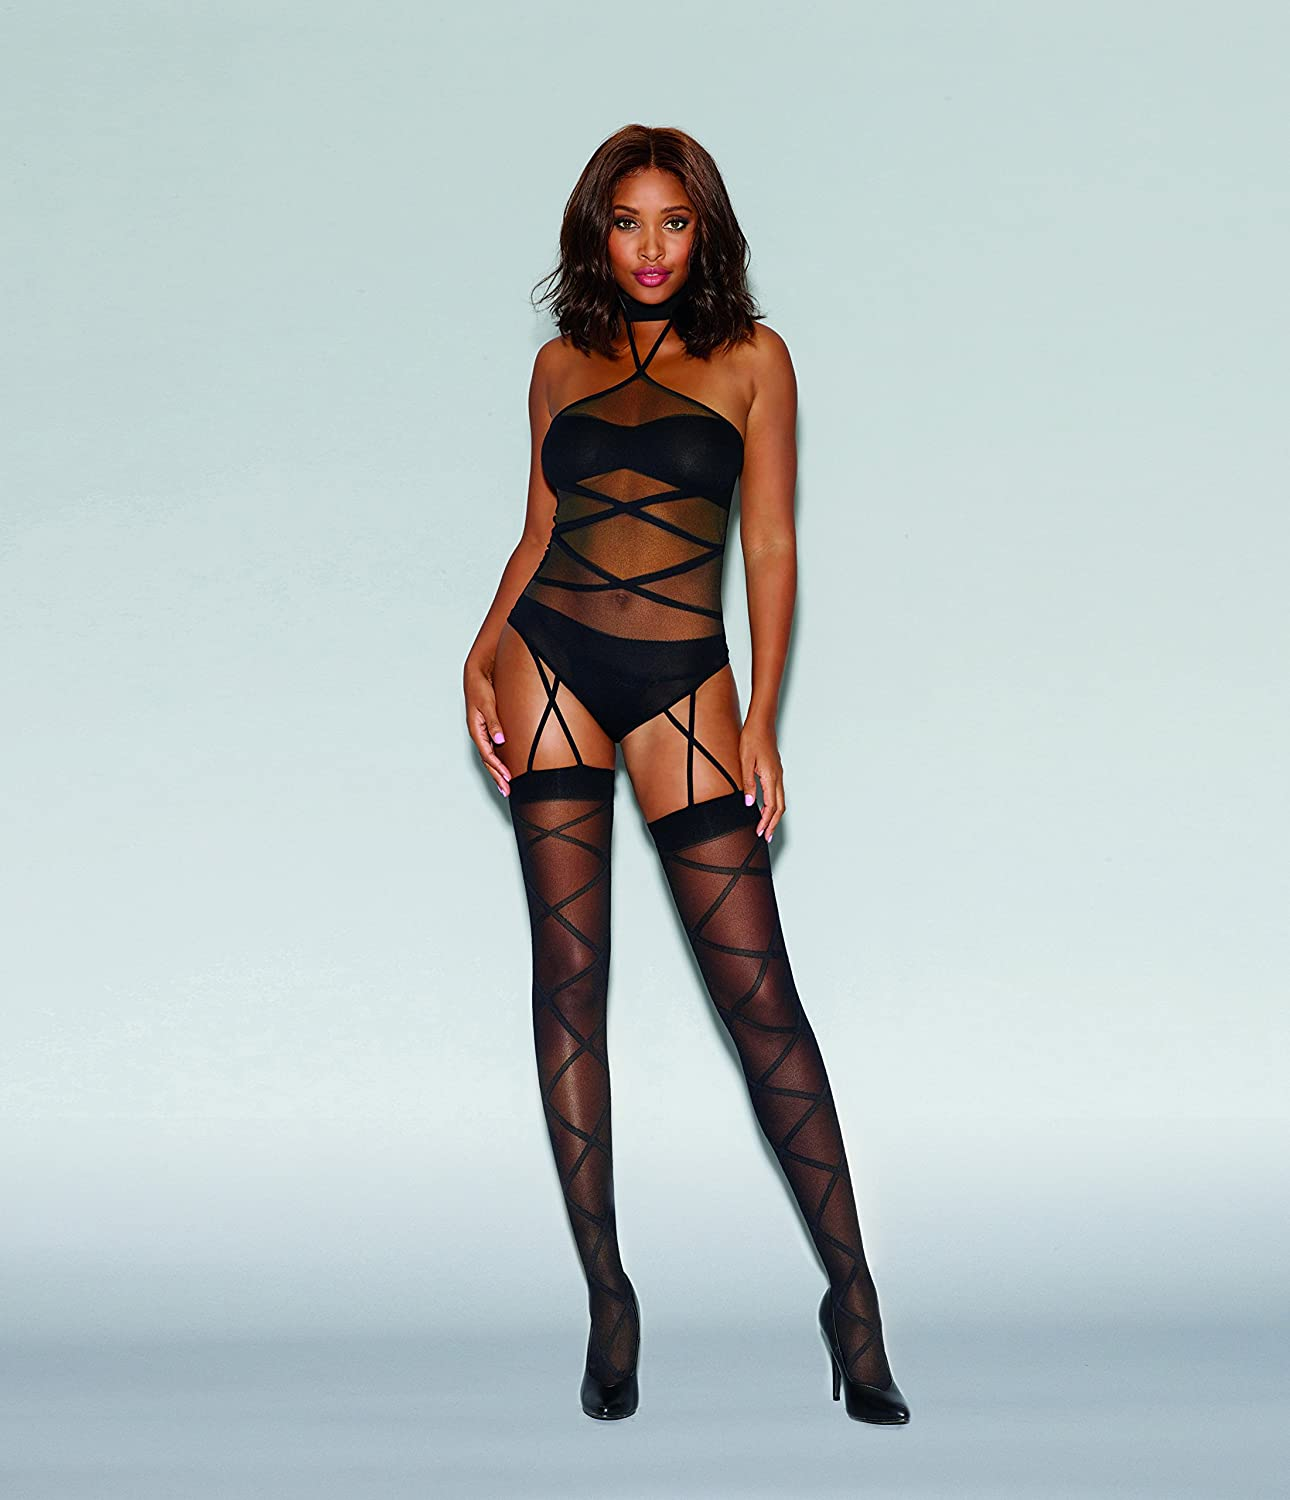 030a8d8a500 DreamGirl Women s Sheer Teddy Bodystocking with Opaque Knitted Bra with  Panty Attached Criss-Cross Garters and Thigh High Stockings